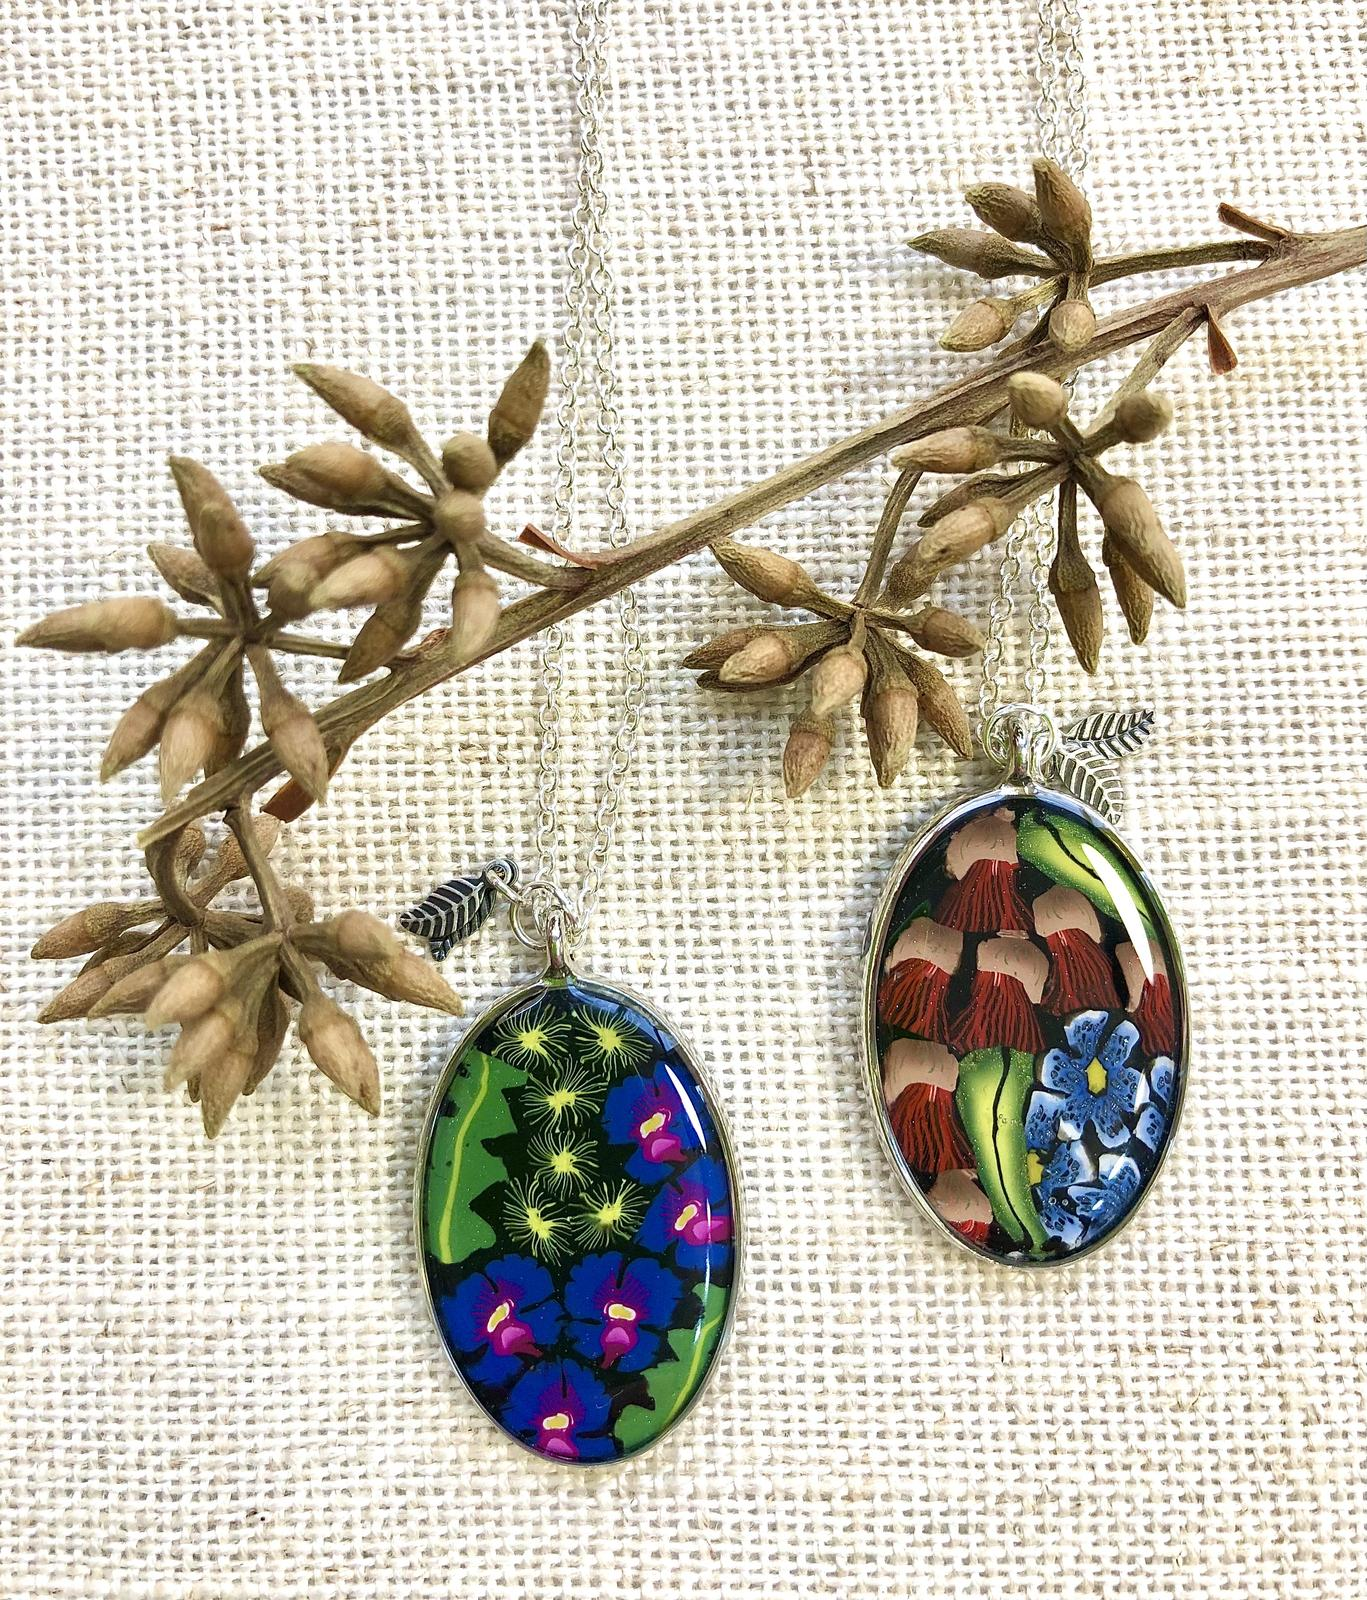 Pendants with wildflowers